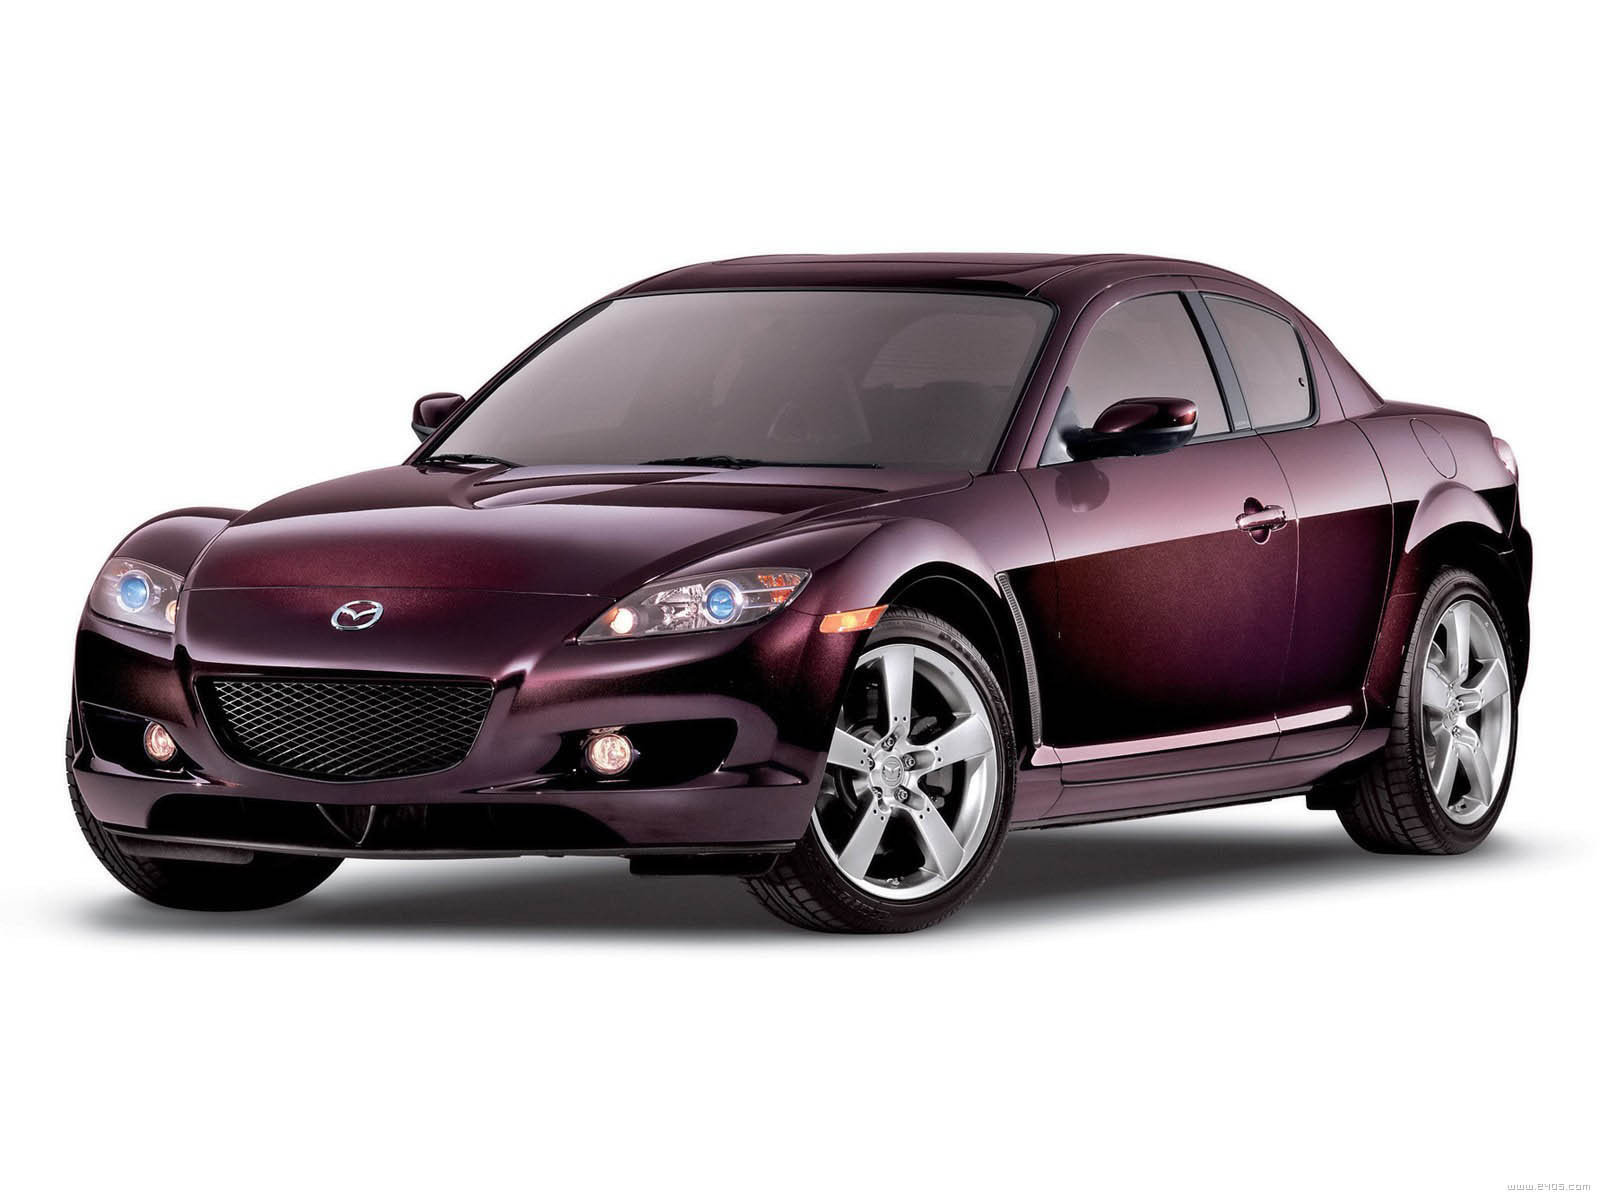 2005 mazda rx 8 shinka picture 10495 car review top. Black Bedroom Furniture Sets. Home Design Ideas